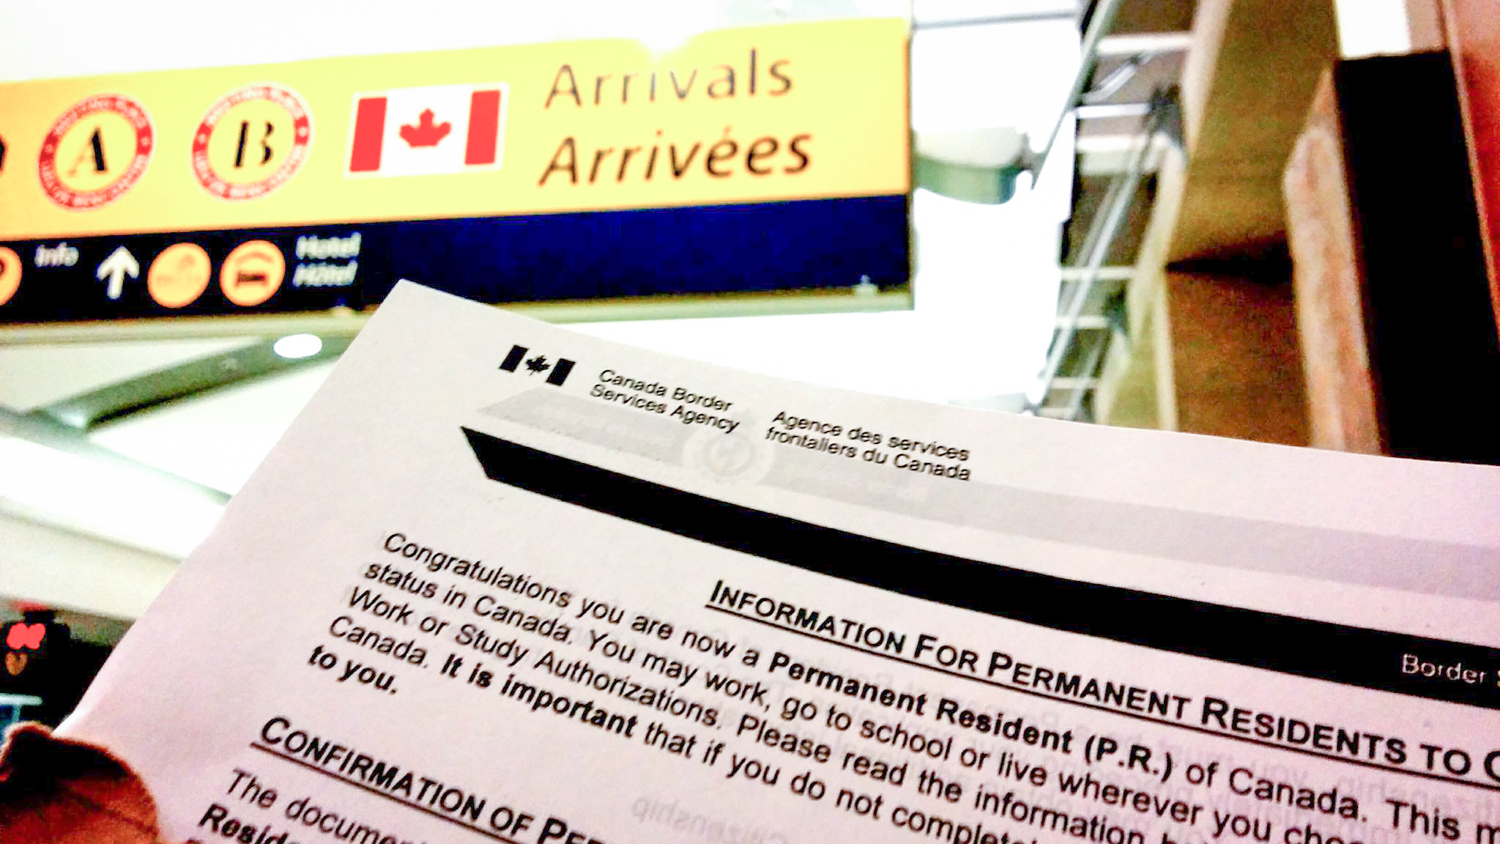 A file photo of permanent residency paperwork being held at Calgary Airport